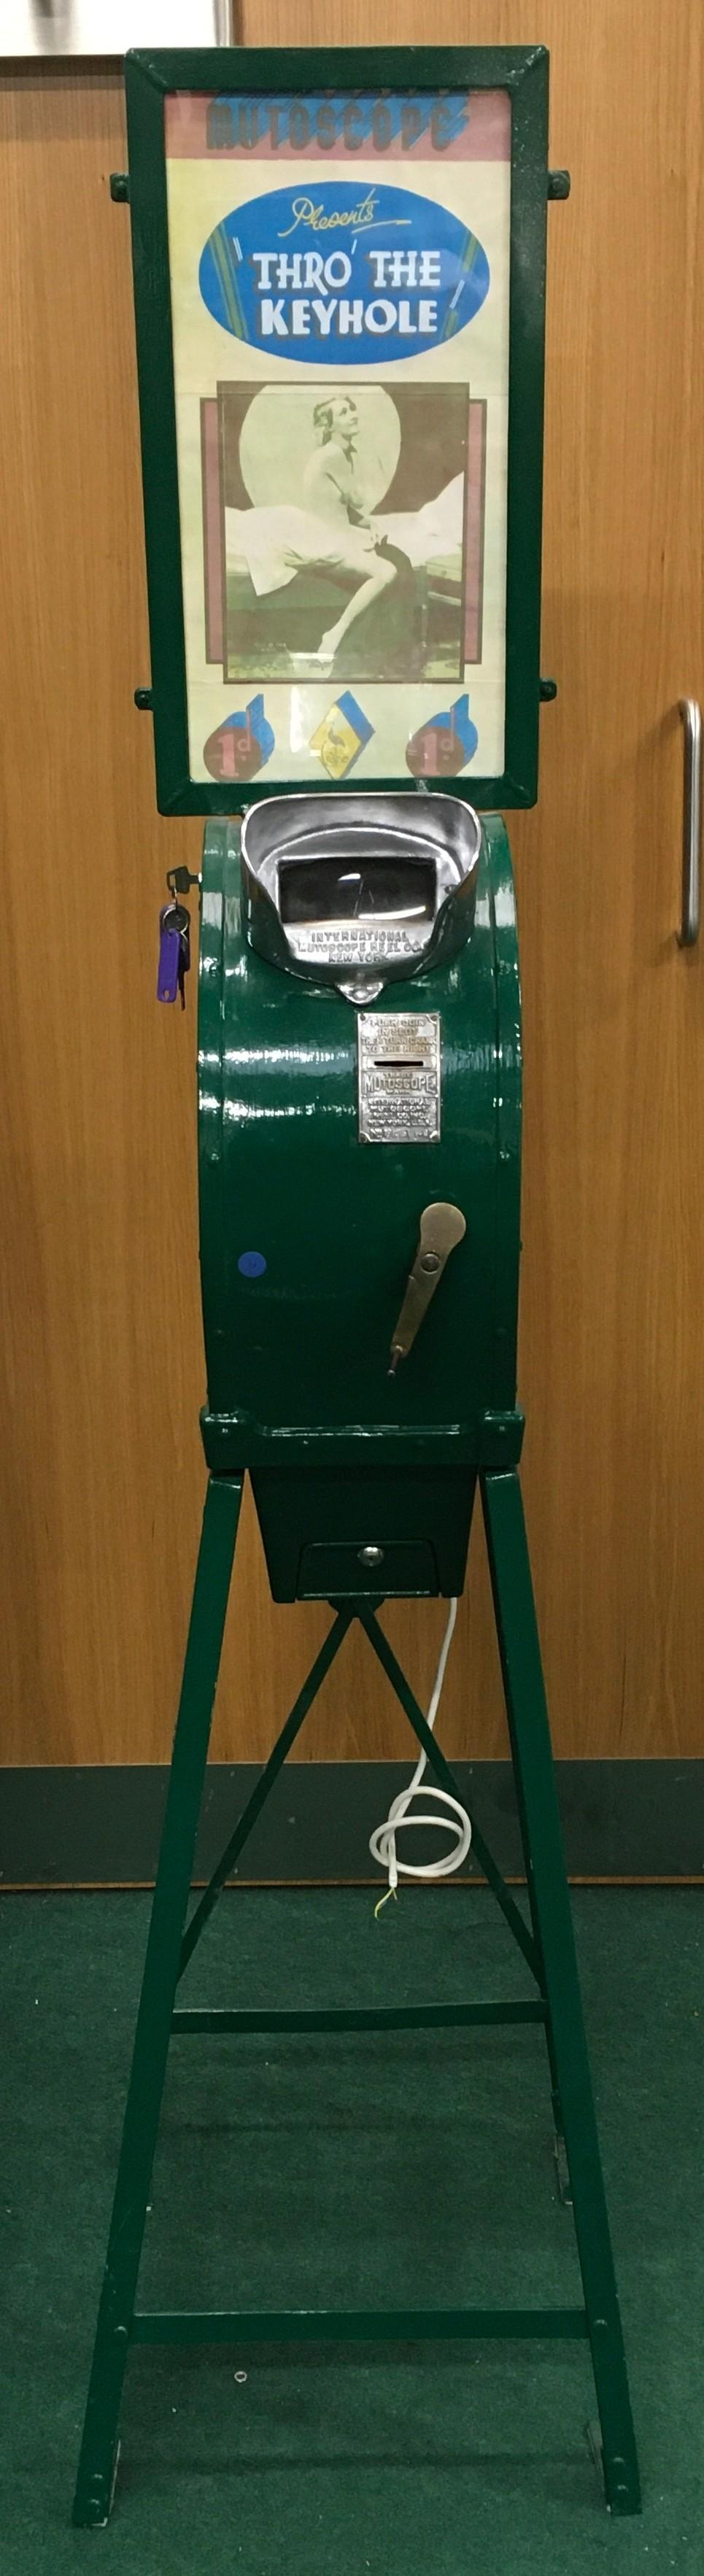 Mutoscope Viewer with Girly Reel - working, with key, on old 1d.